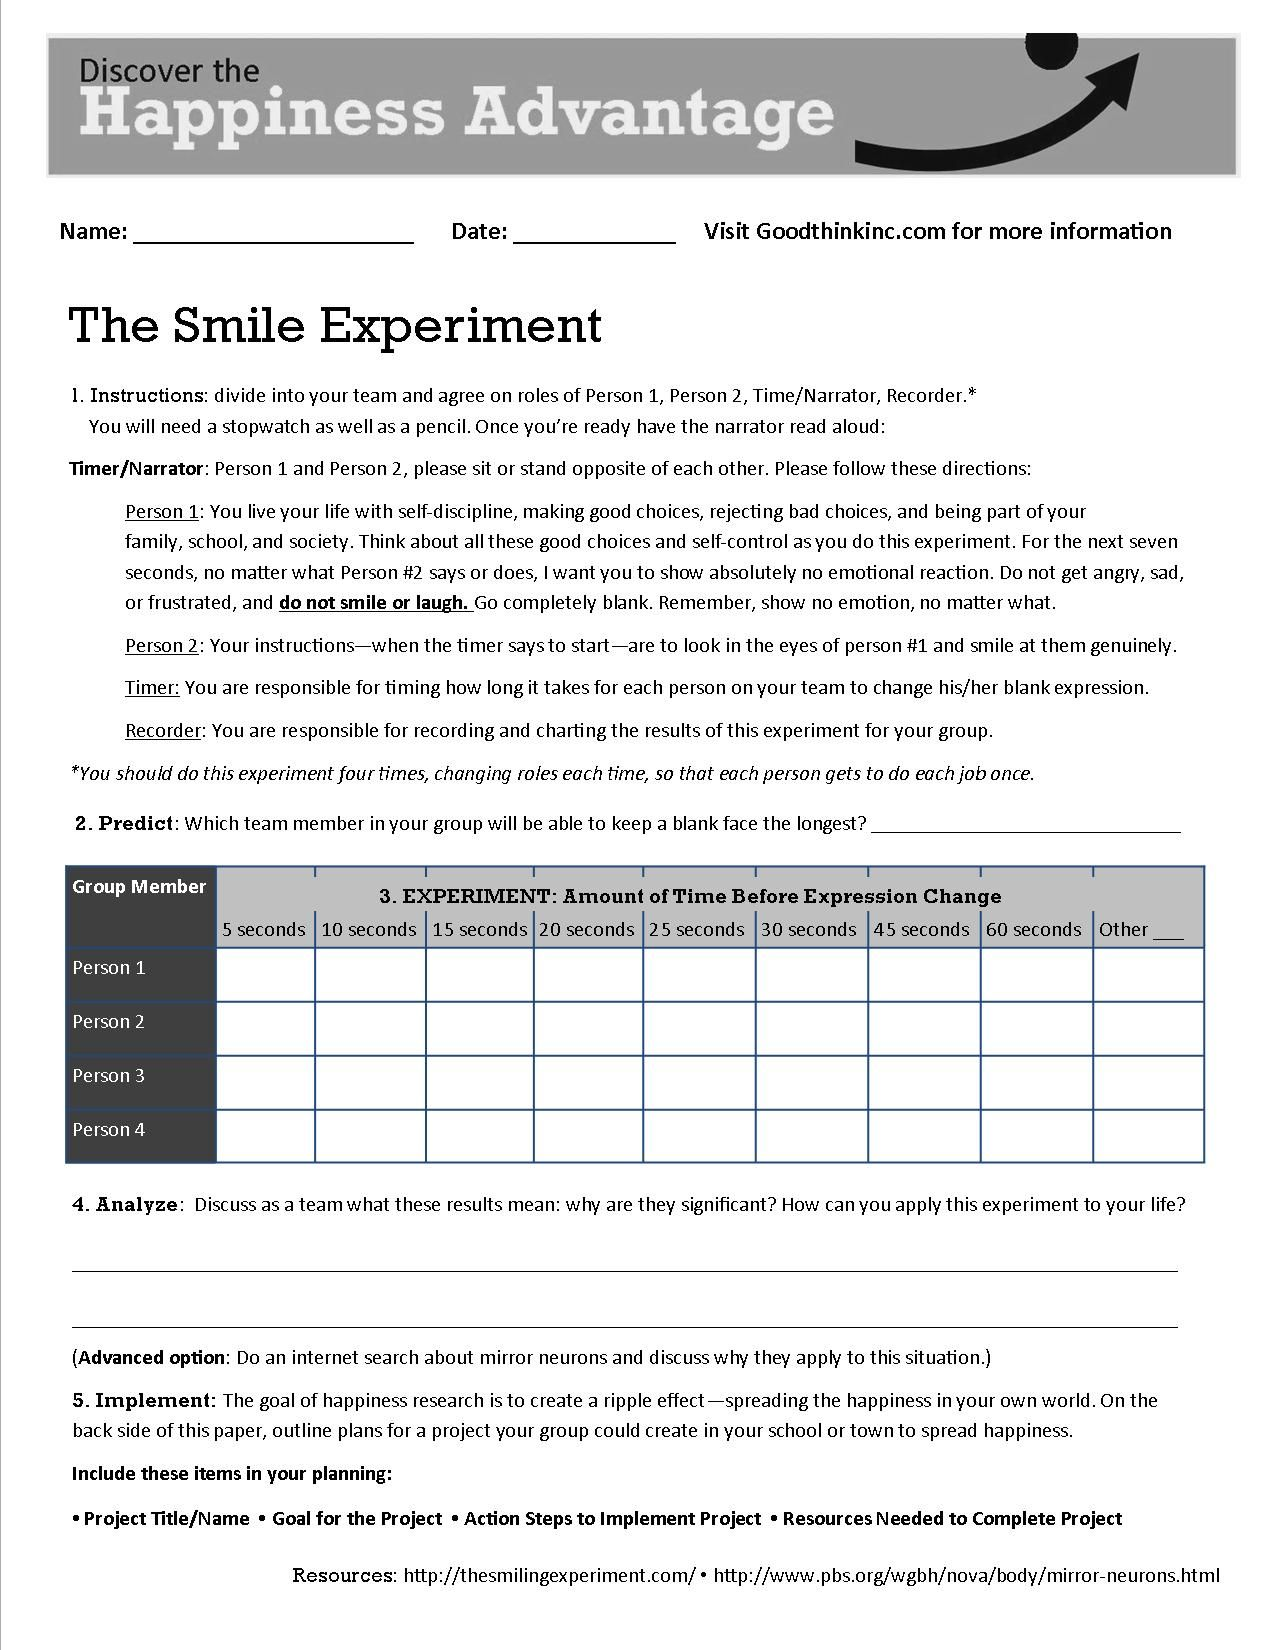 This Is Goodthink S Smile Experiment Worksheet That Turns